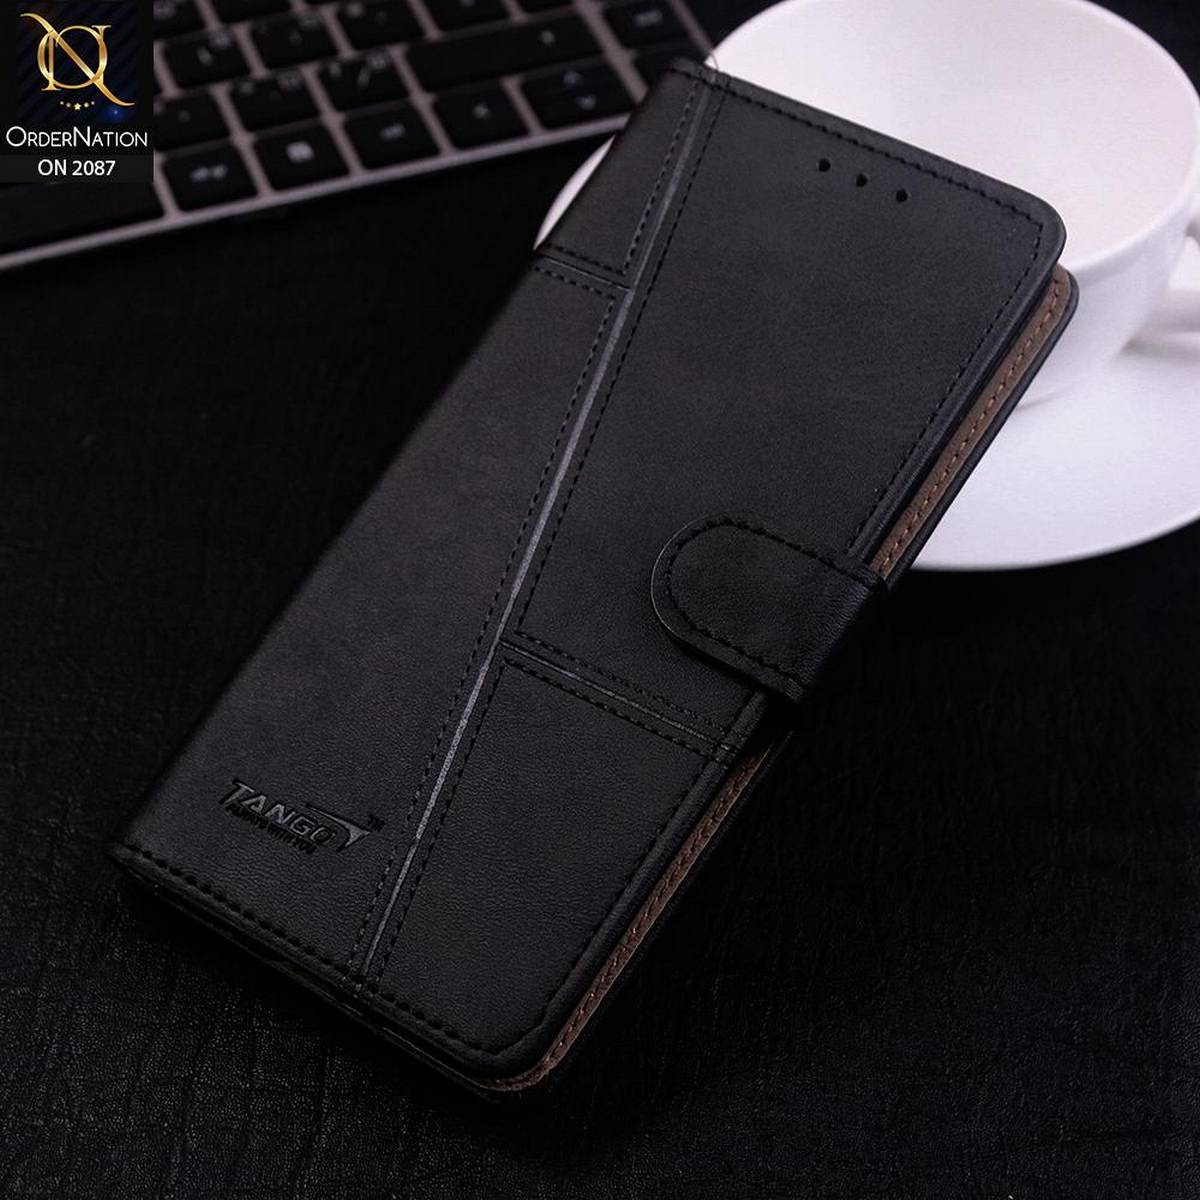 Huawei Y6 prime 2019 Canvas Diary Wallet Case Premium Flip Folio Case with Card Slot Magnetic Closure TPU Shockproof Interior Case ultra protection book flip cover wallet